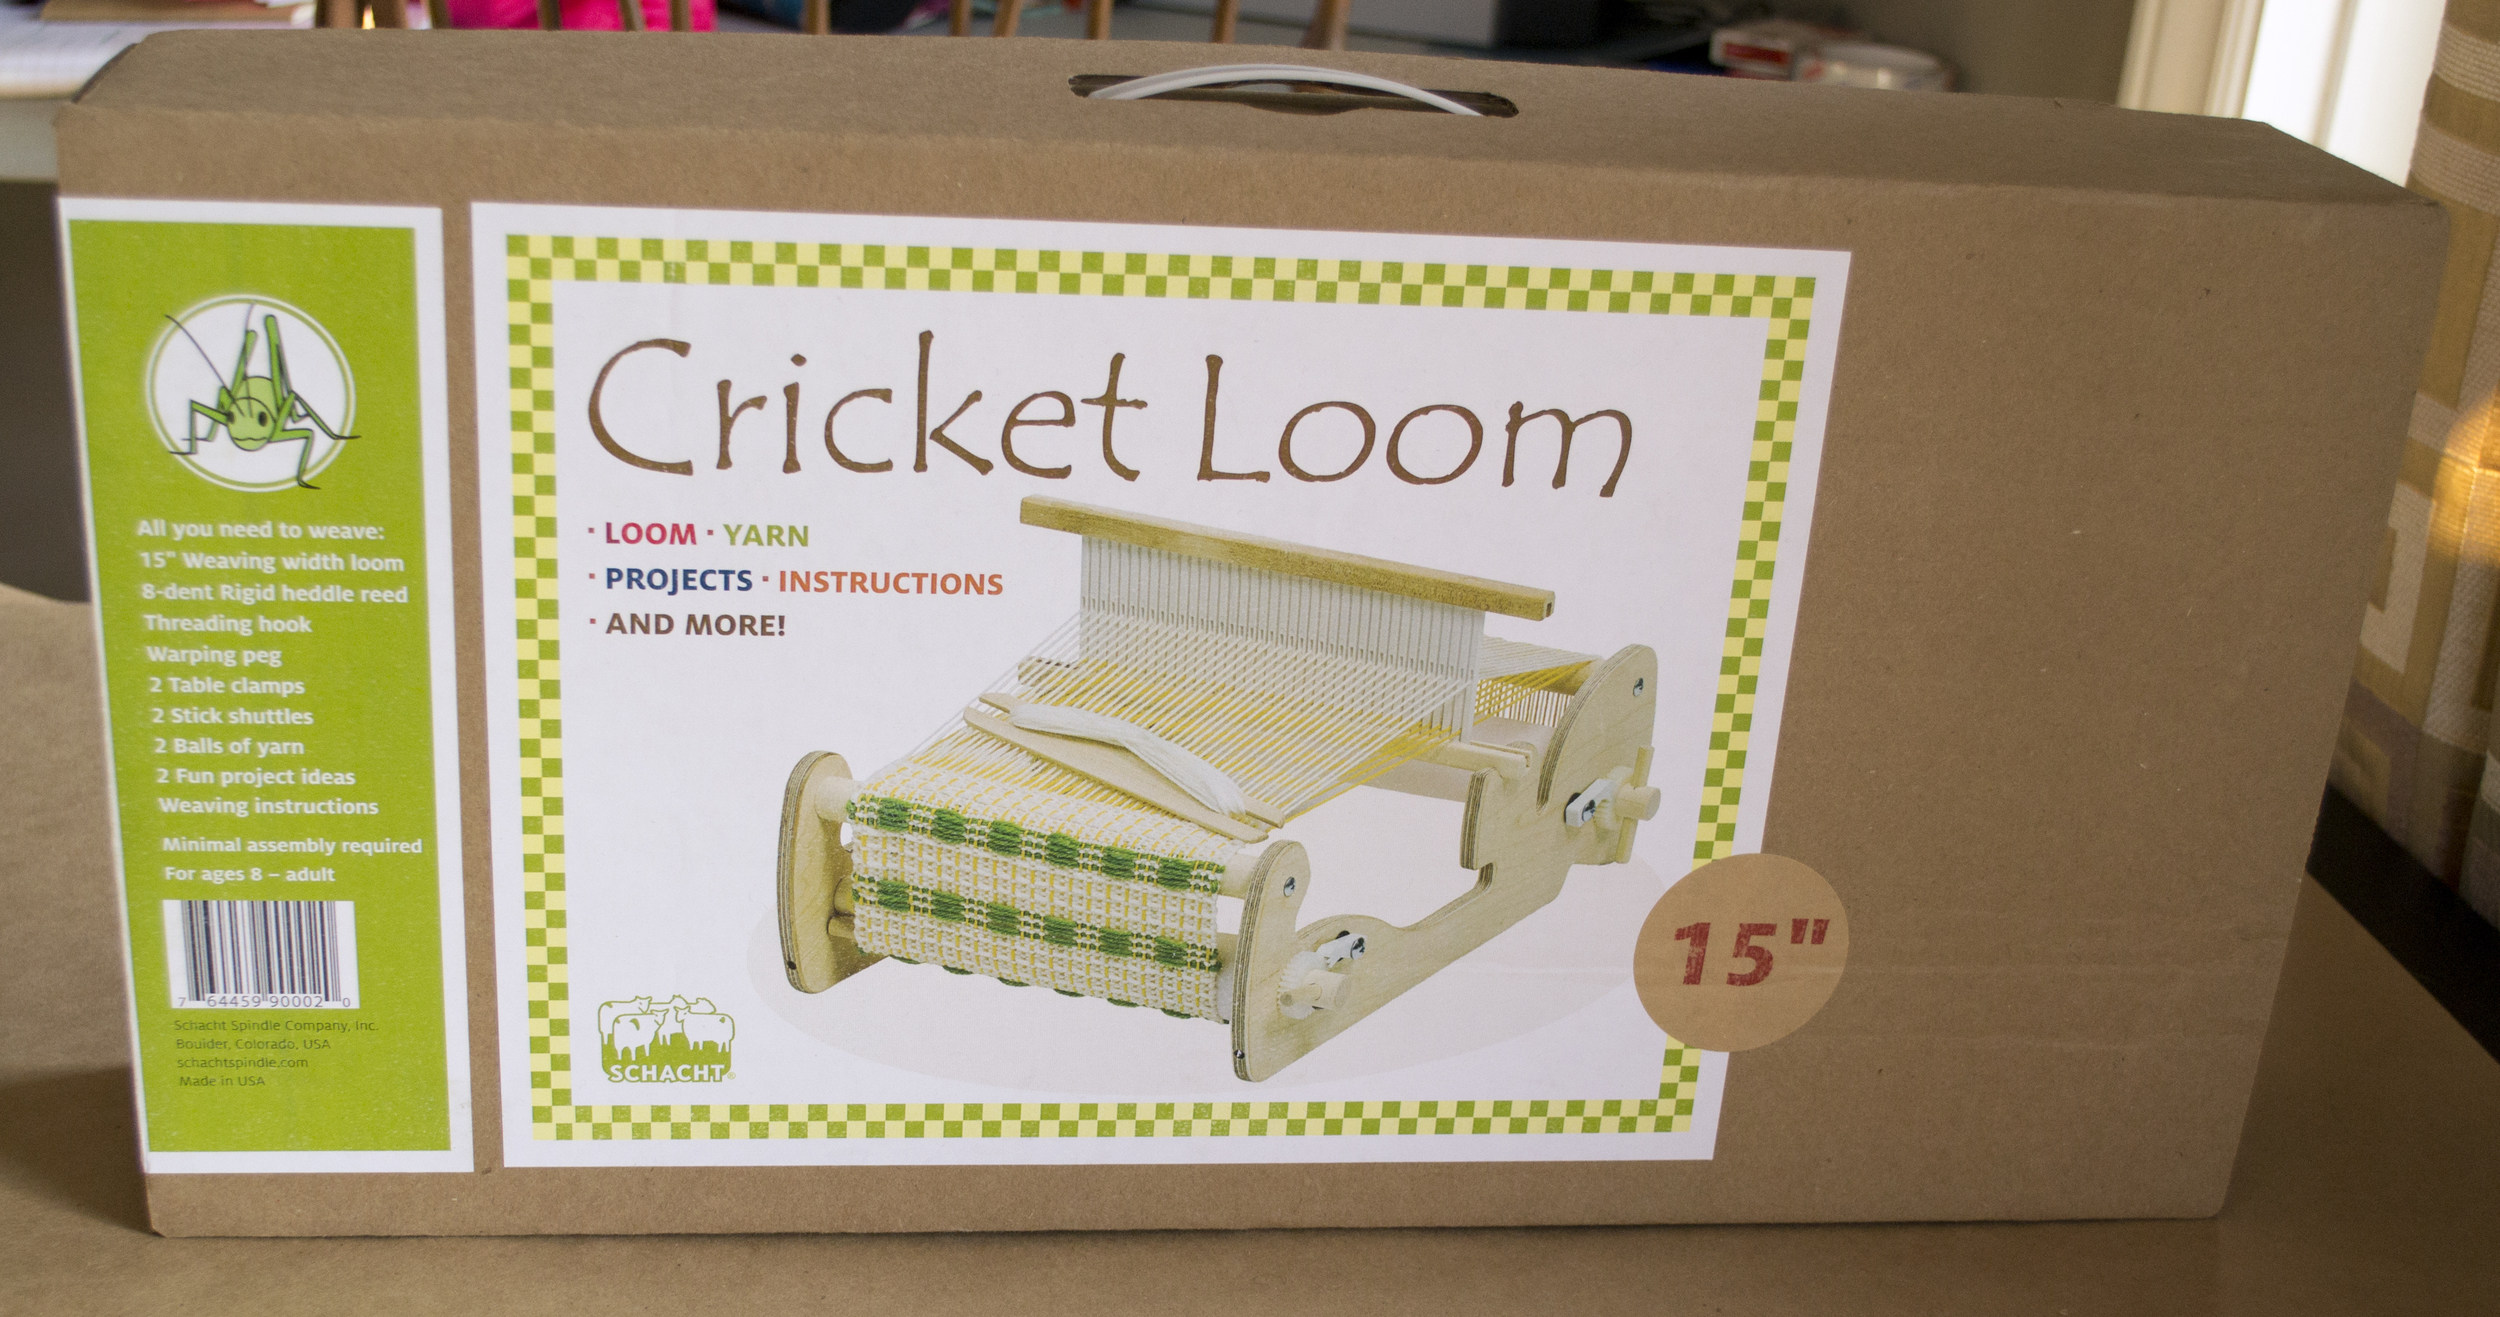 Unboxing the Schacht Cricket Loom — Anzula